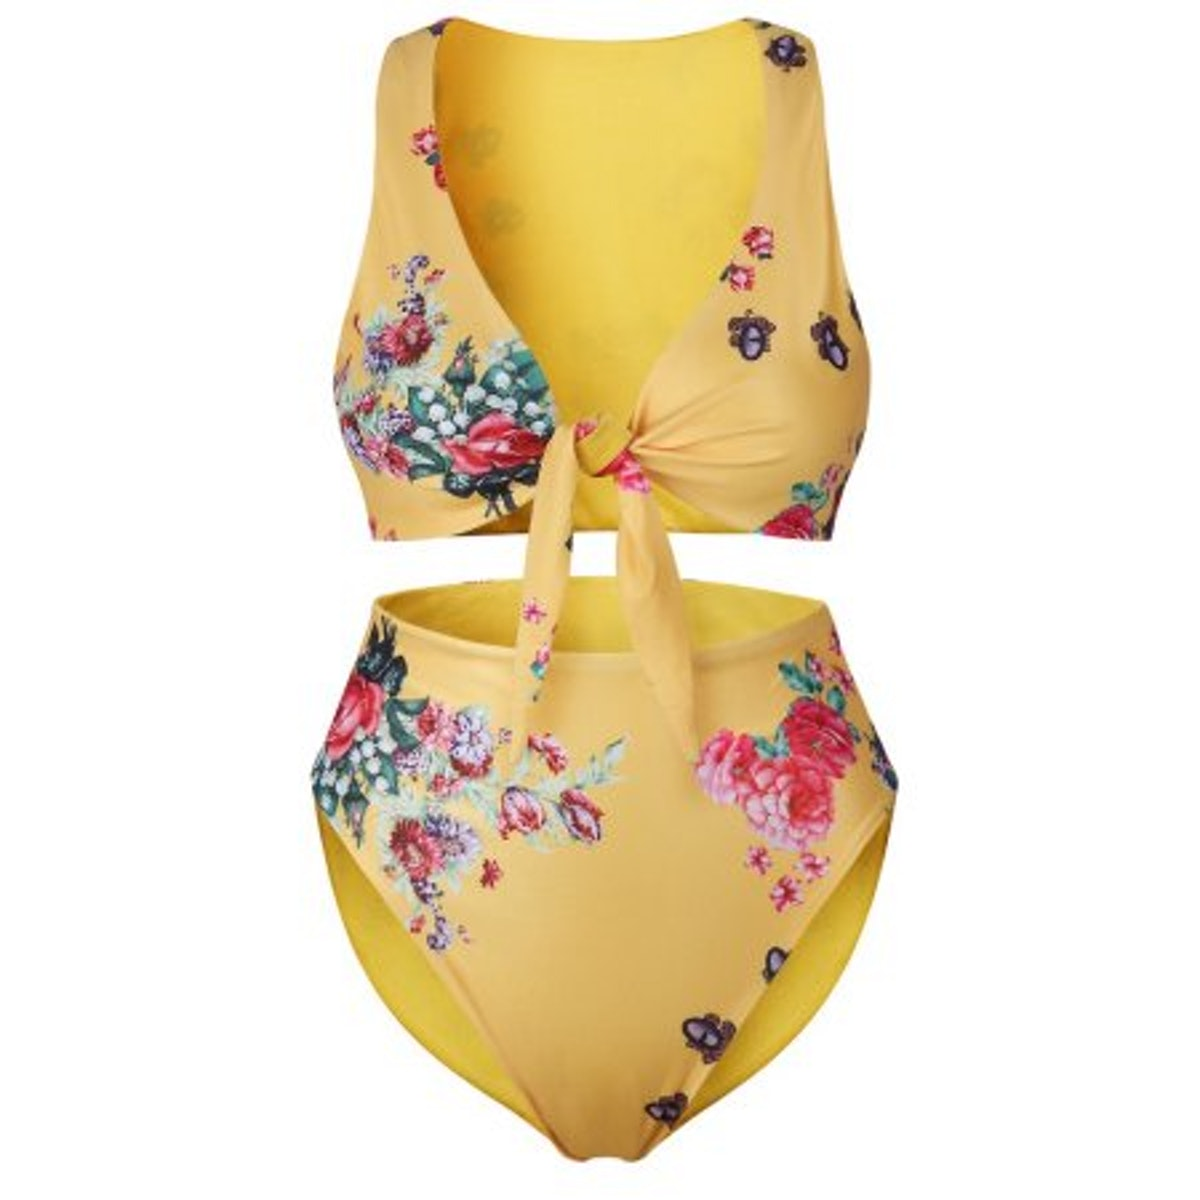 Womens Two Piece Swimsuits High Waisted Bikini Floral Print Tie Knot Front Bathing Suit